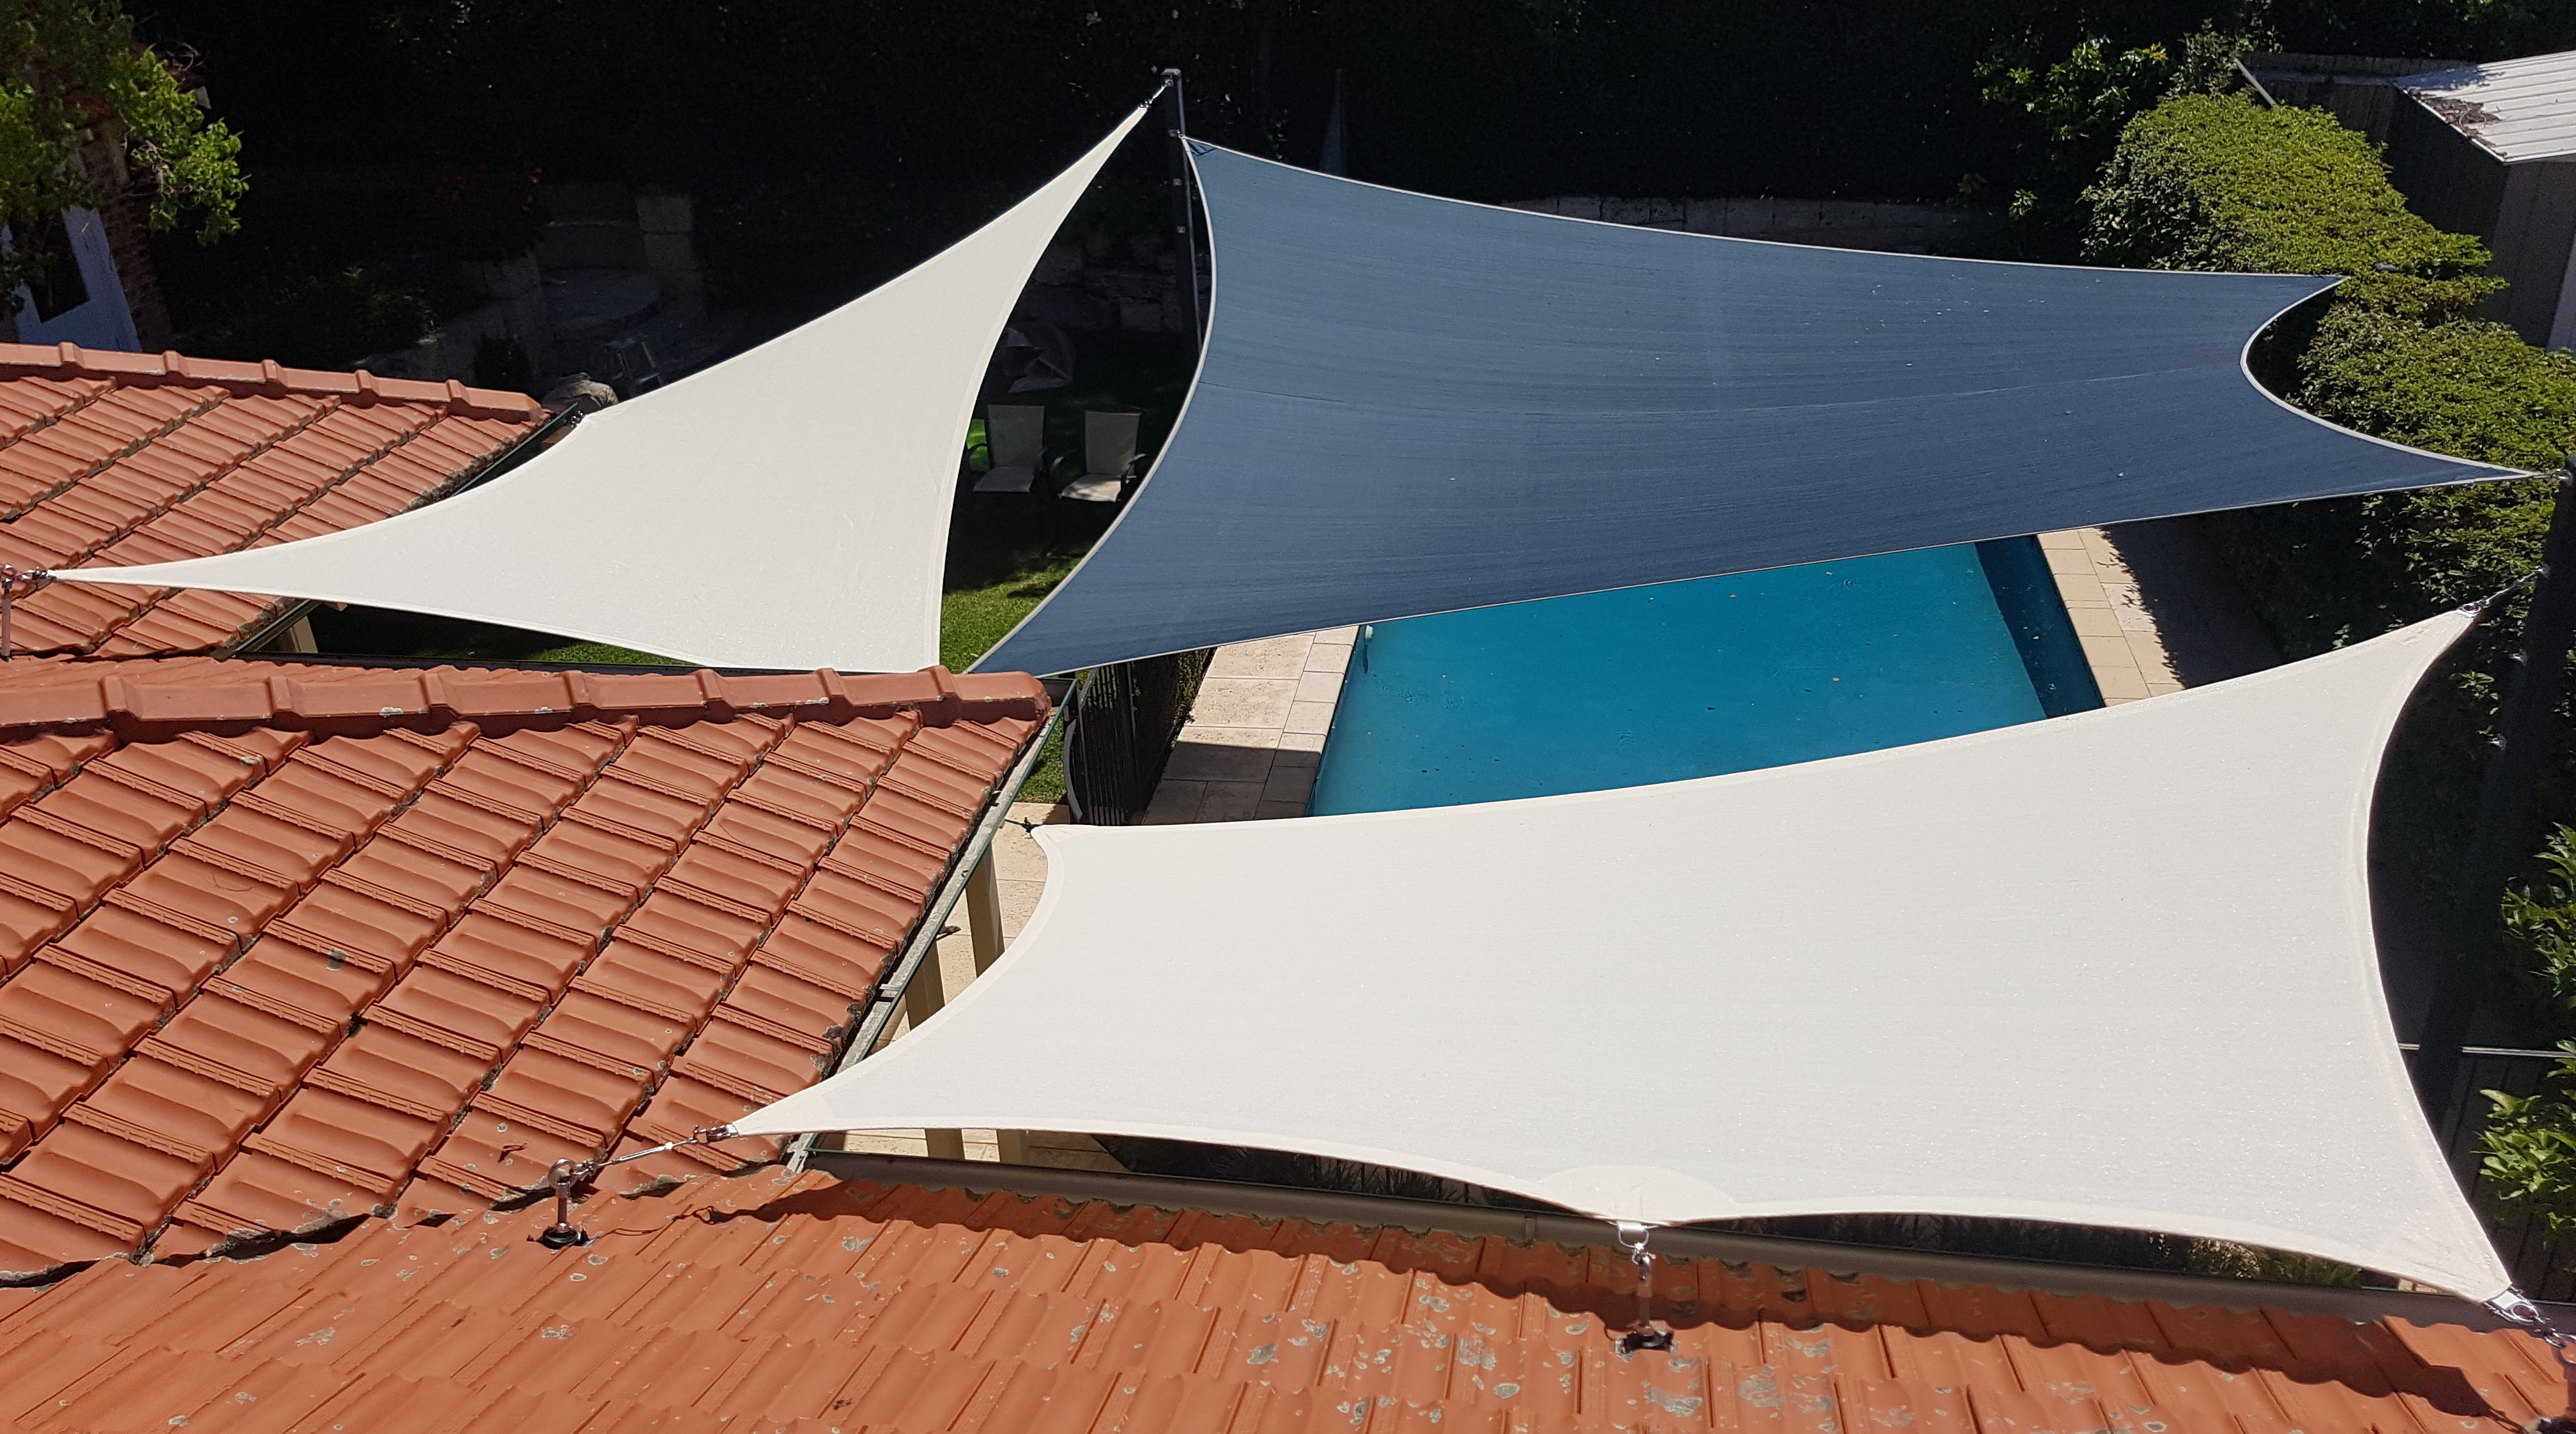 Nedland_Shade_Sails_commshade_porcelain_2.jpg